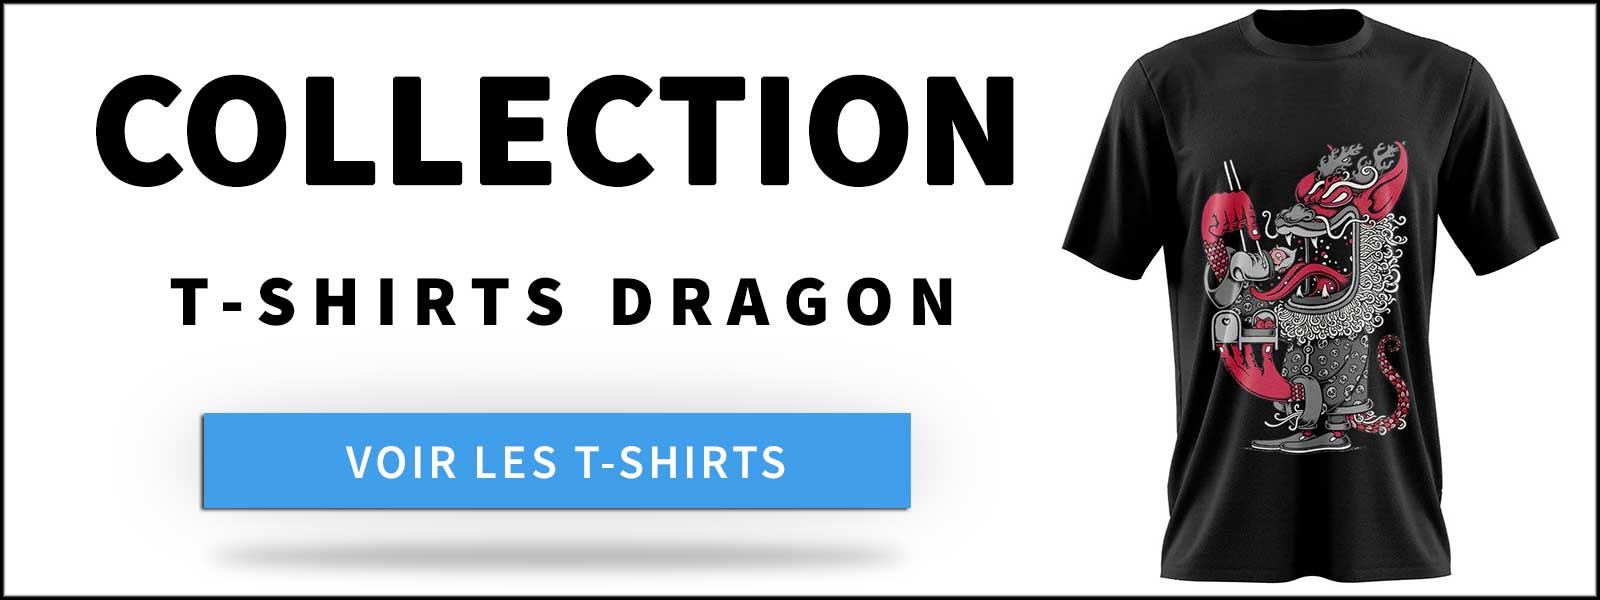 T-shirts Dragon